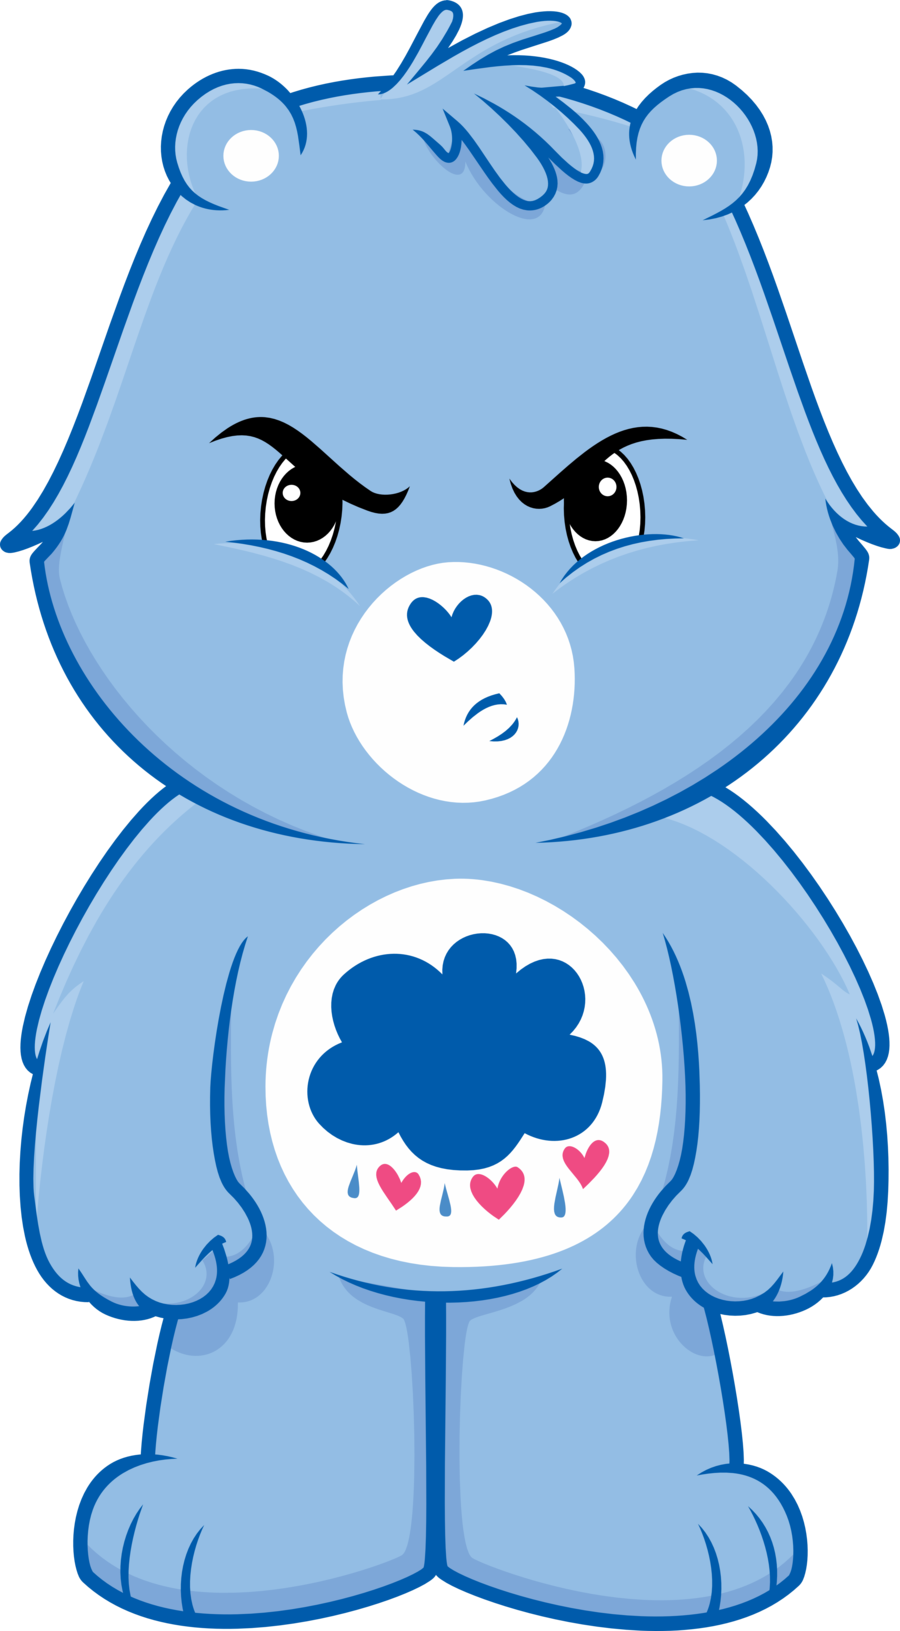 Grumpy bear vector by. Creation clipart cares god